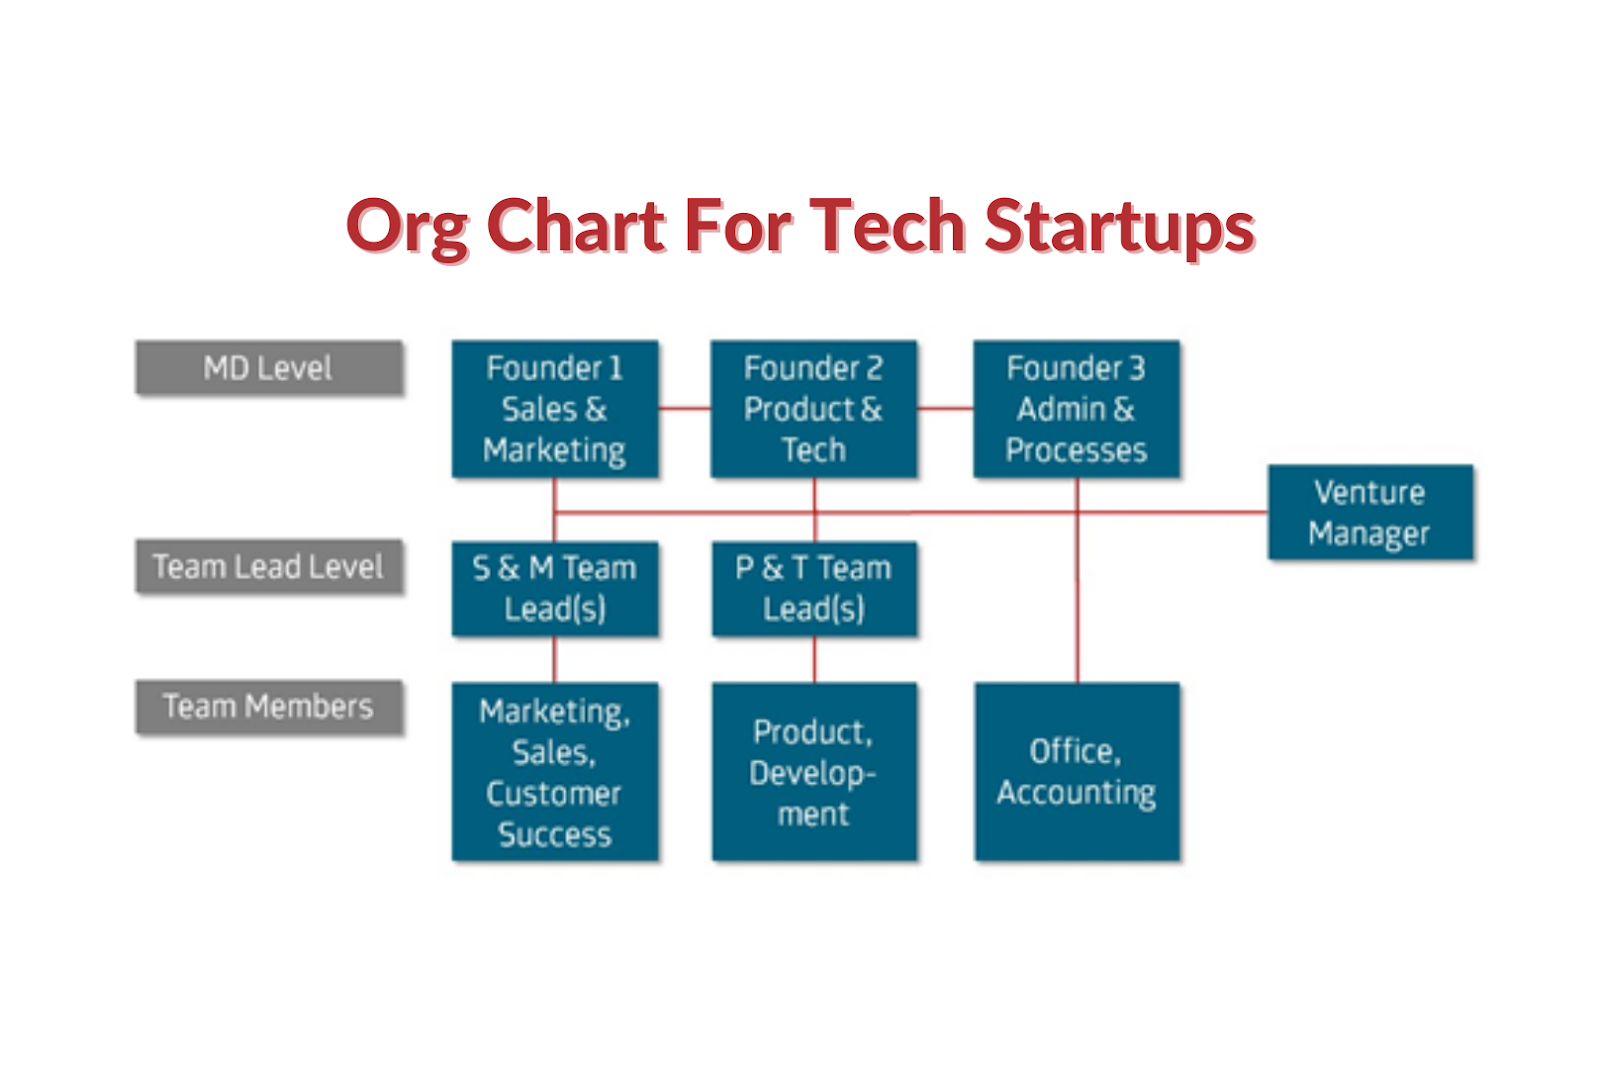 Org chart for tech startups